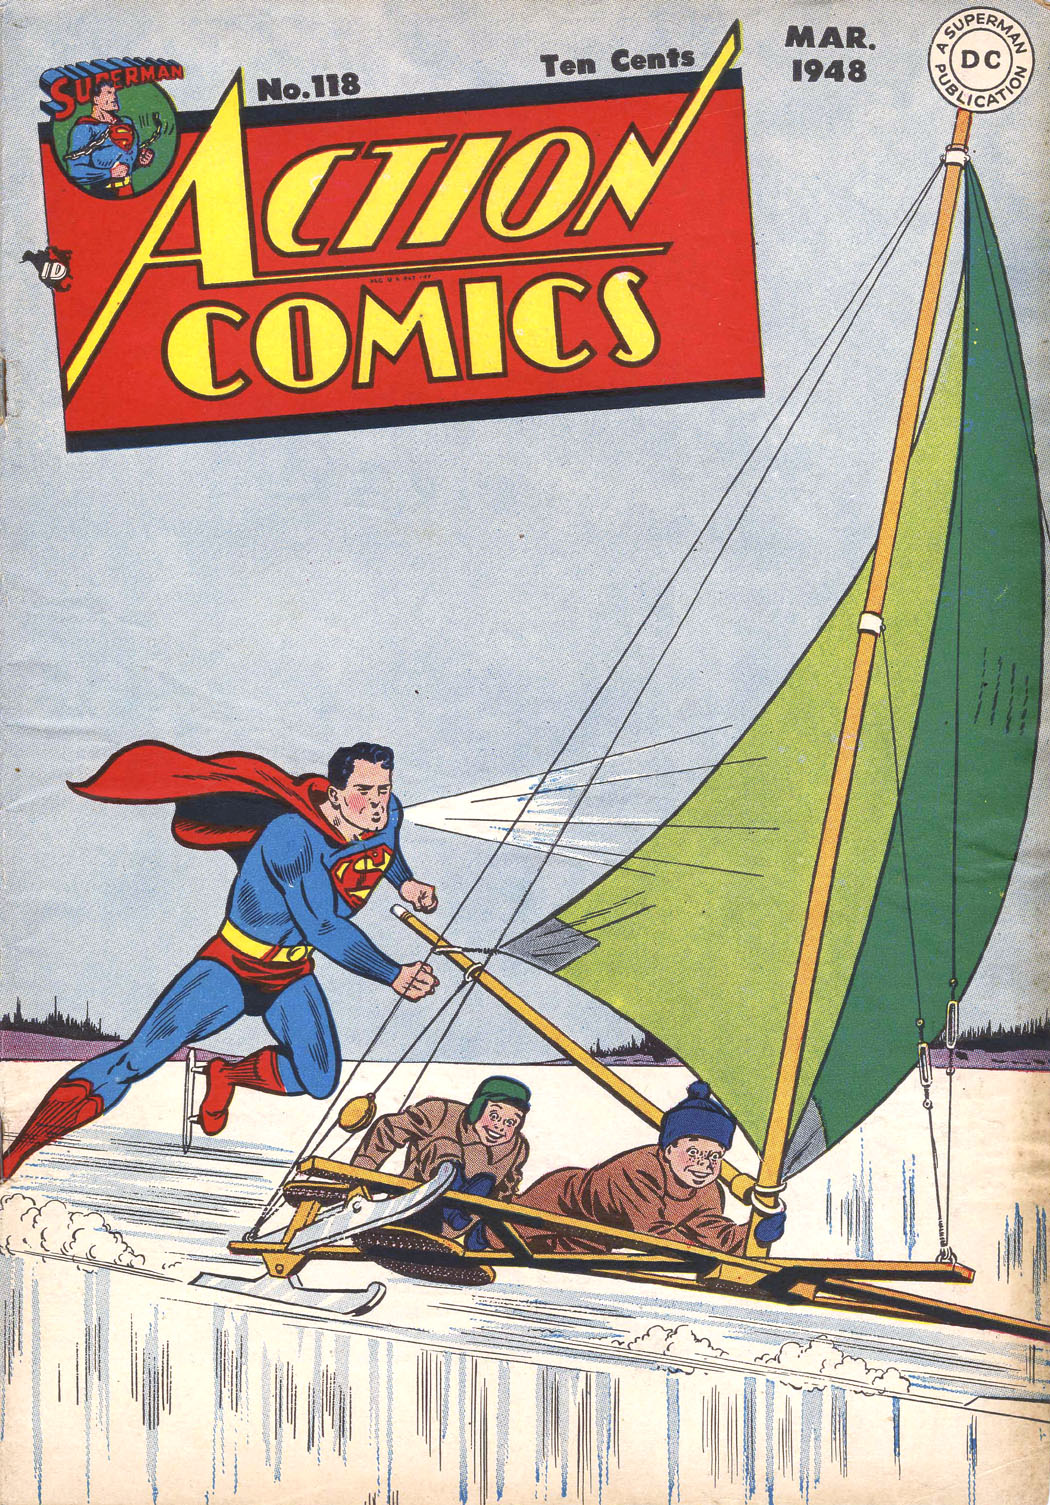 Read online Action Comics (1938) comic -  Issue #118 - 1